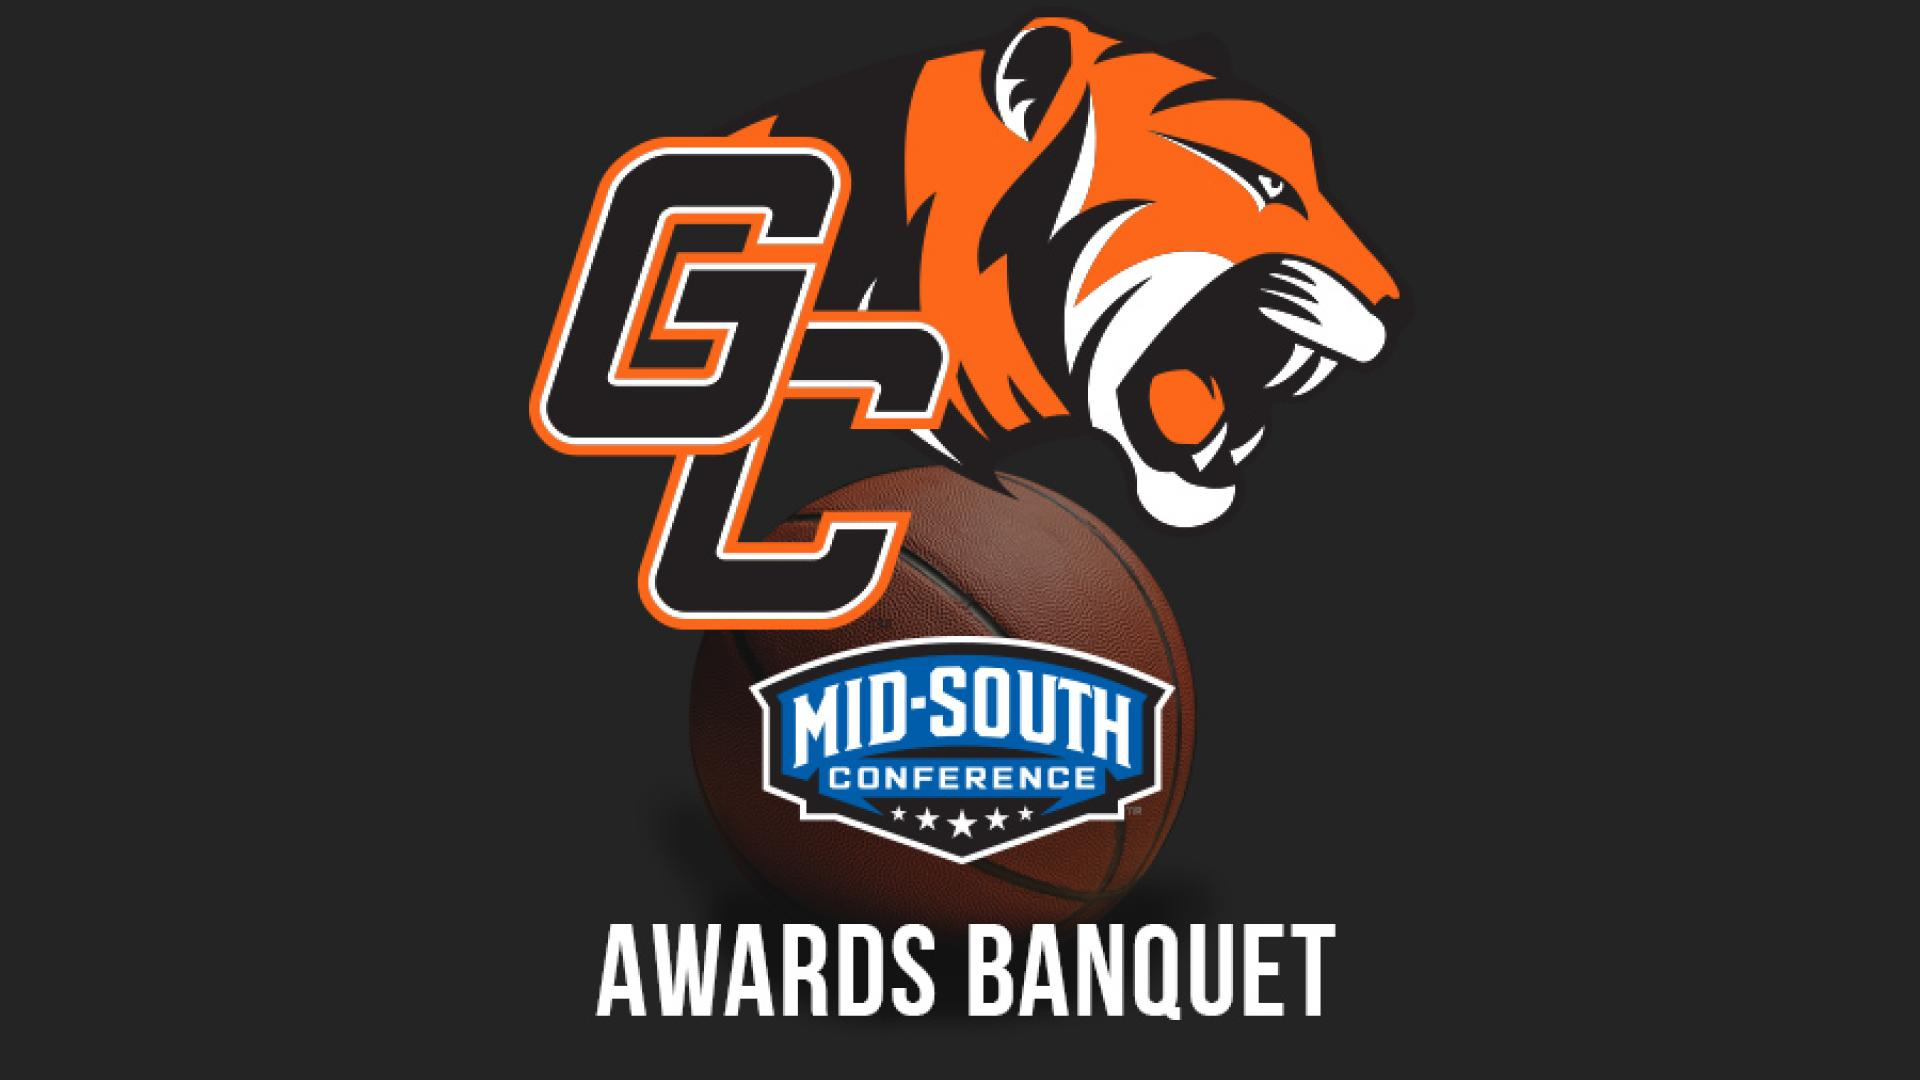 Tigers Honored at Annual Dinner Event